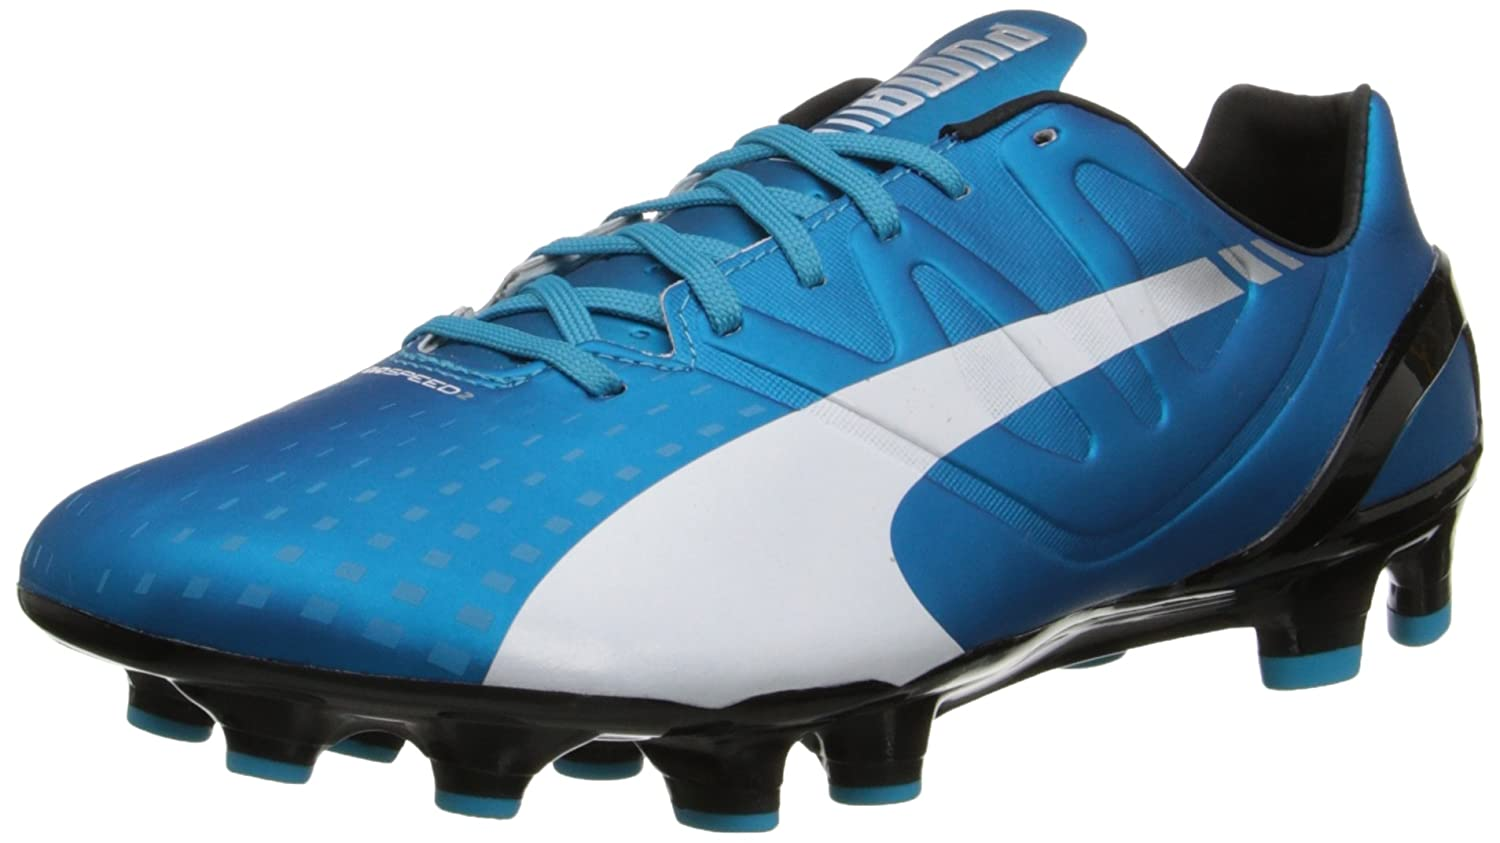 PUMA Men's Evospeed 2.3 Firm Ground Soccer Schuhe, Hawaiian Ocean Weiß schwarz, 8 M US